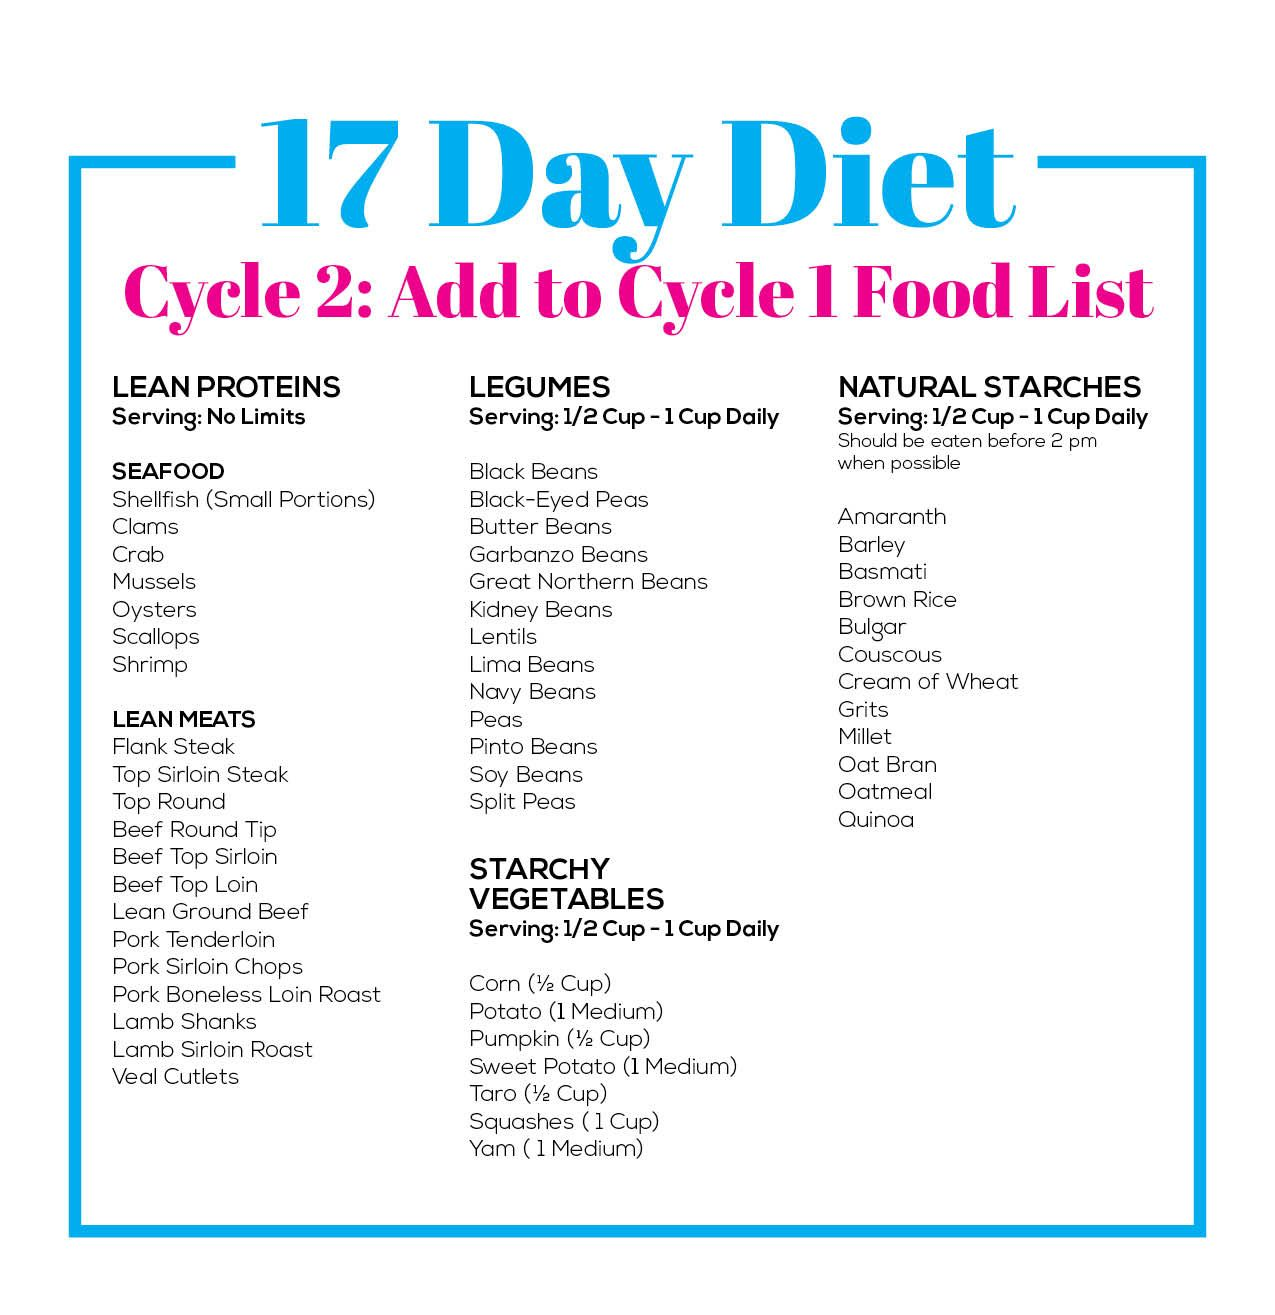 17 days diet cycle 2